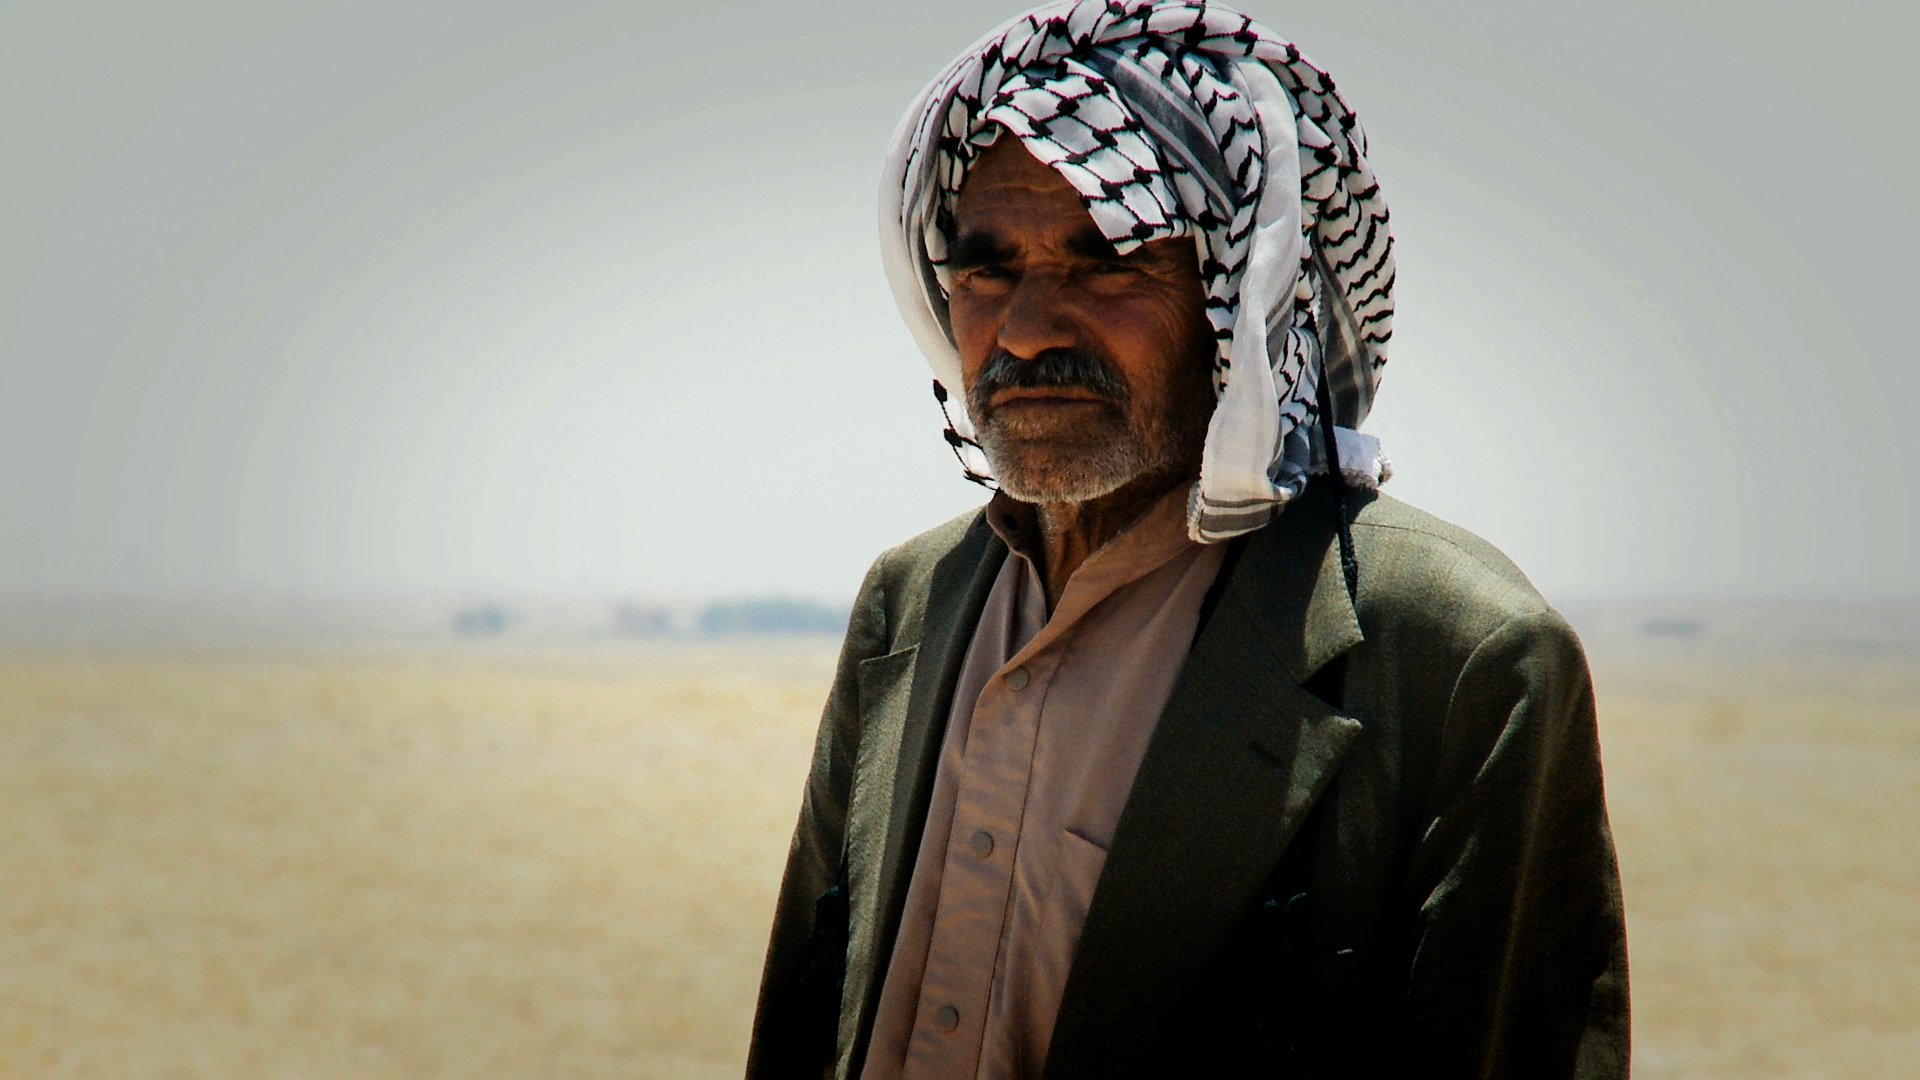 Arab farmer SHAHAB AHMED AWAD lived in Shernaw village in 1963 and saw his Kurdish neighbours expelled from the Kirkuk region by the Arab National Guard. After the collapse of the 1970 Autonomy Agreement between the Kurdish leadership and the Iraqi government, he explains how he, like other Arabs living peacefully amongst Kurds, was himself removed from his home in 1975.